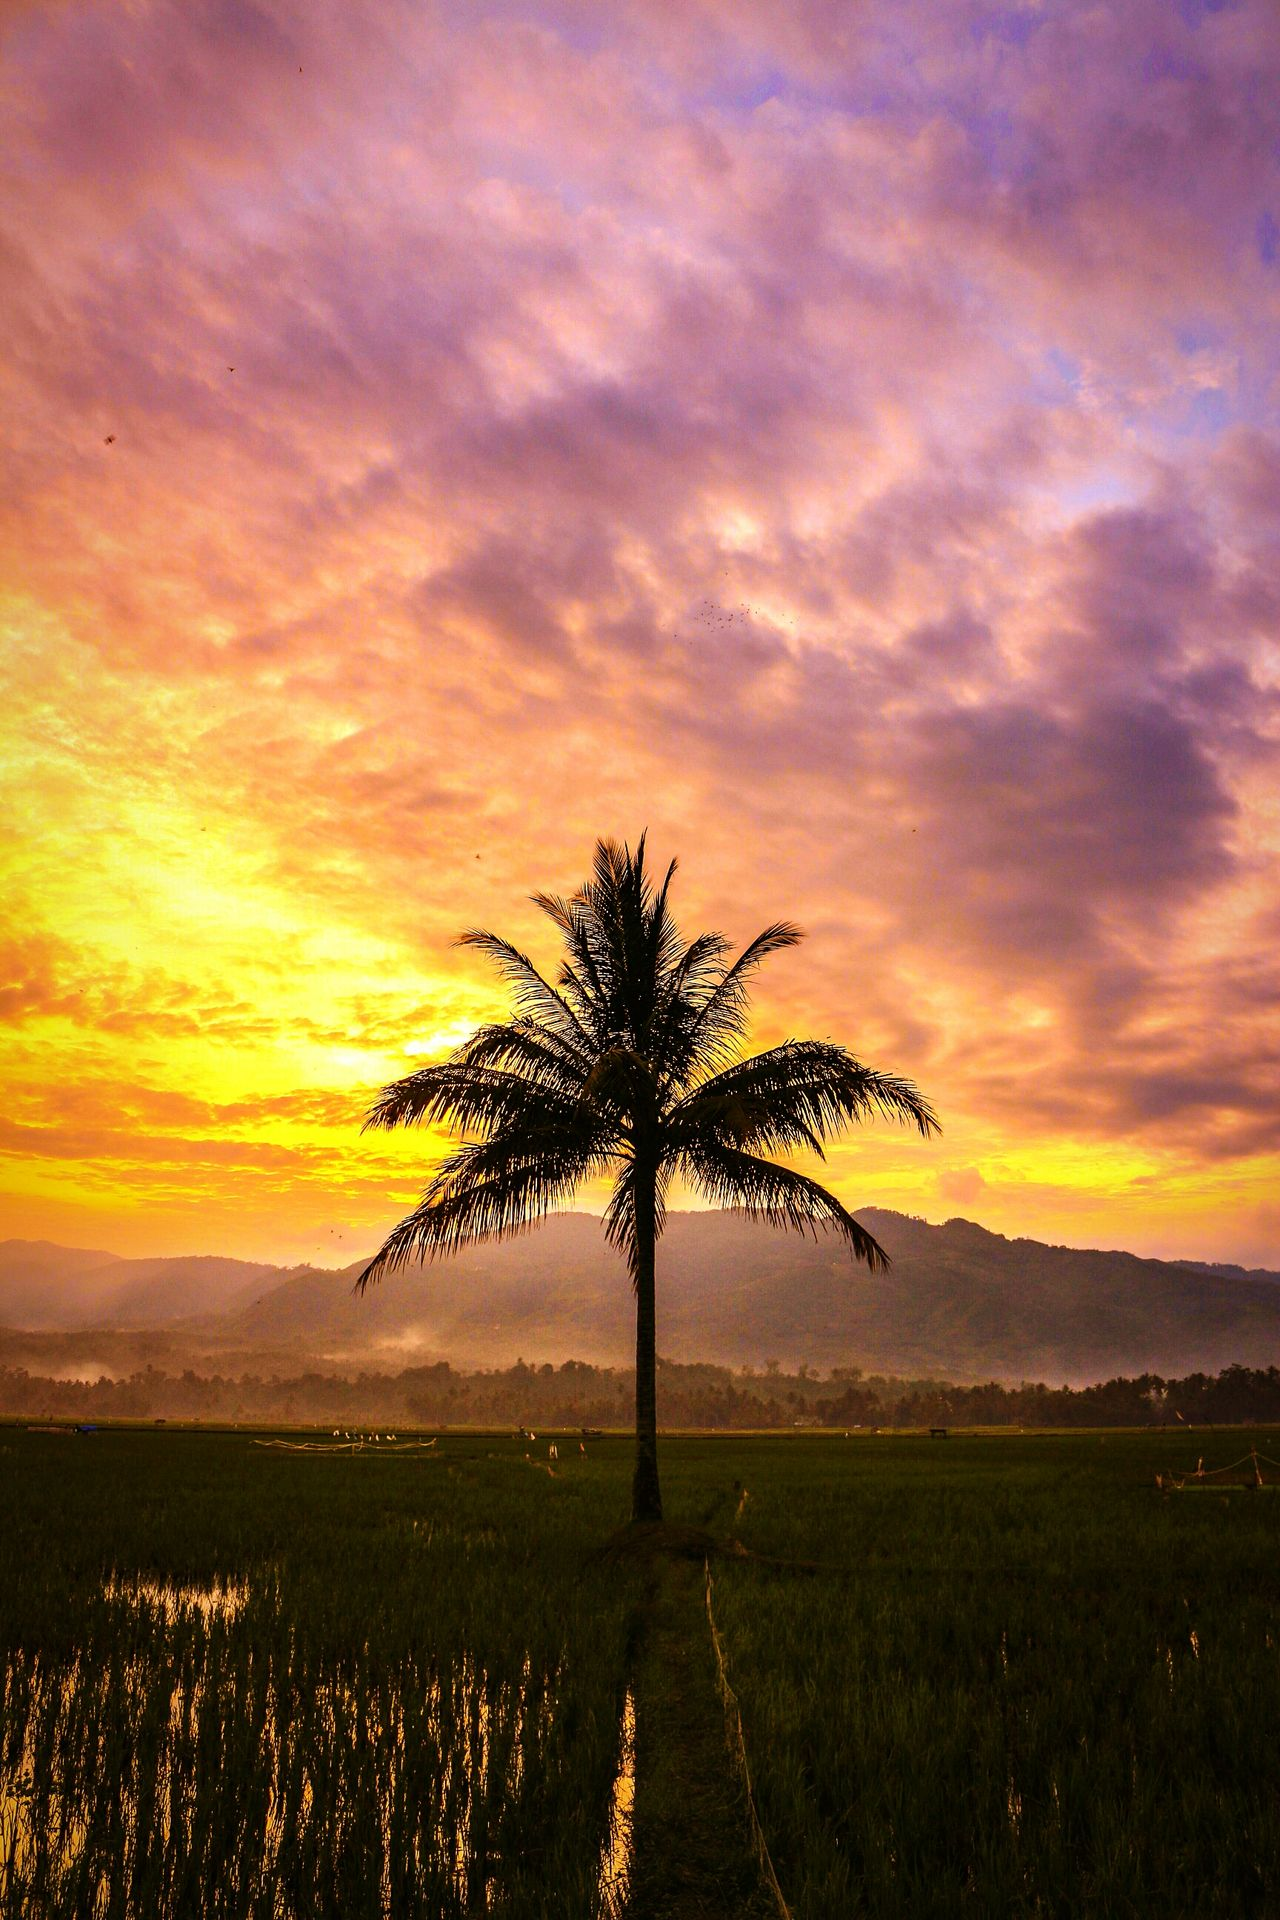 One lonely coconut tree Tree Nature Sky Beauty In Nature Wonderfulindonesia Photography Twilight Sunset Dramatic Sky